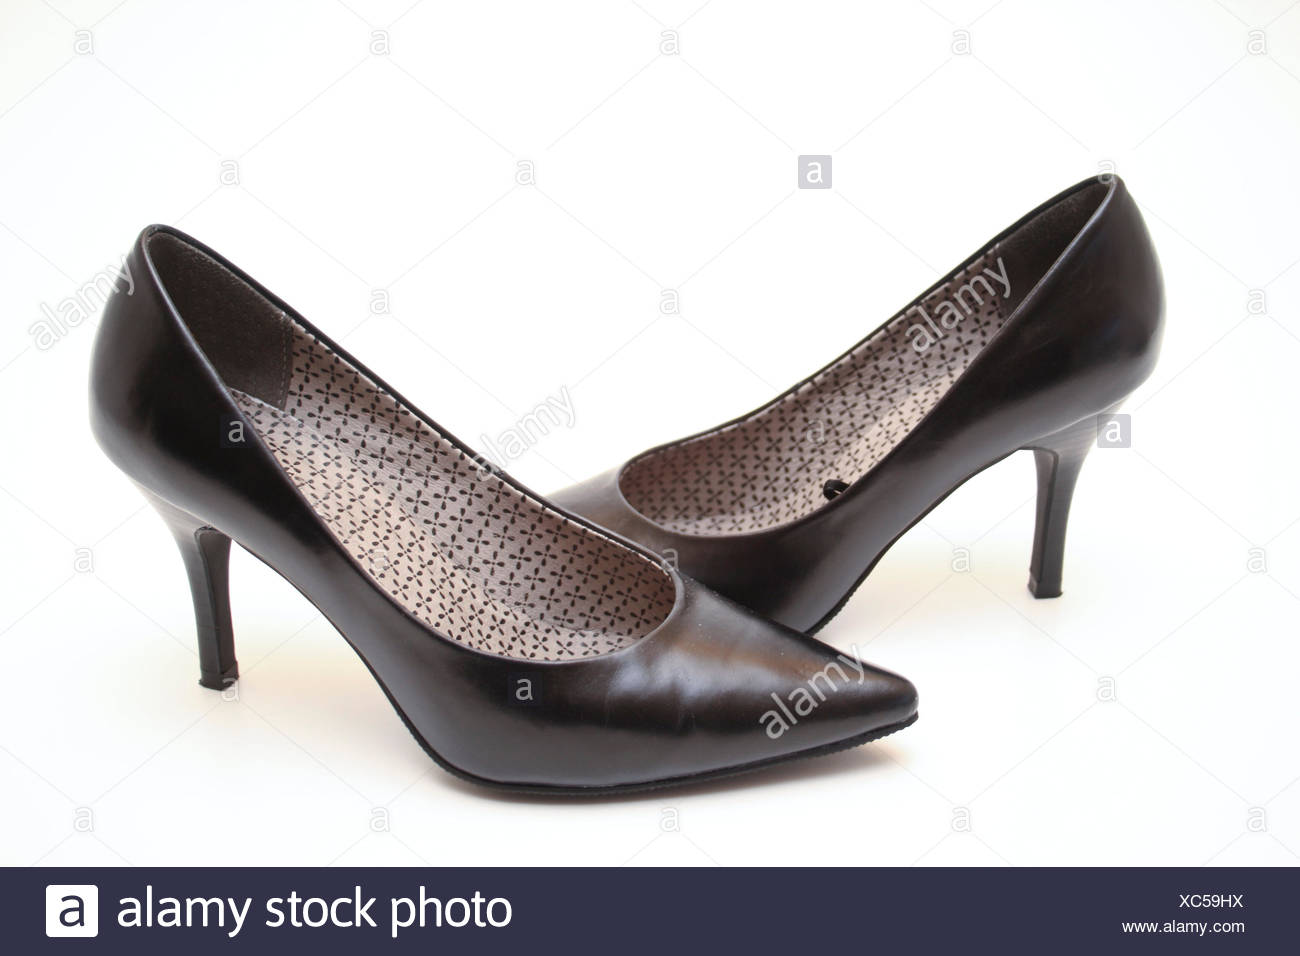 women's shoes - Stock Image